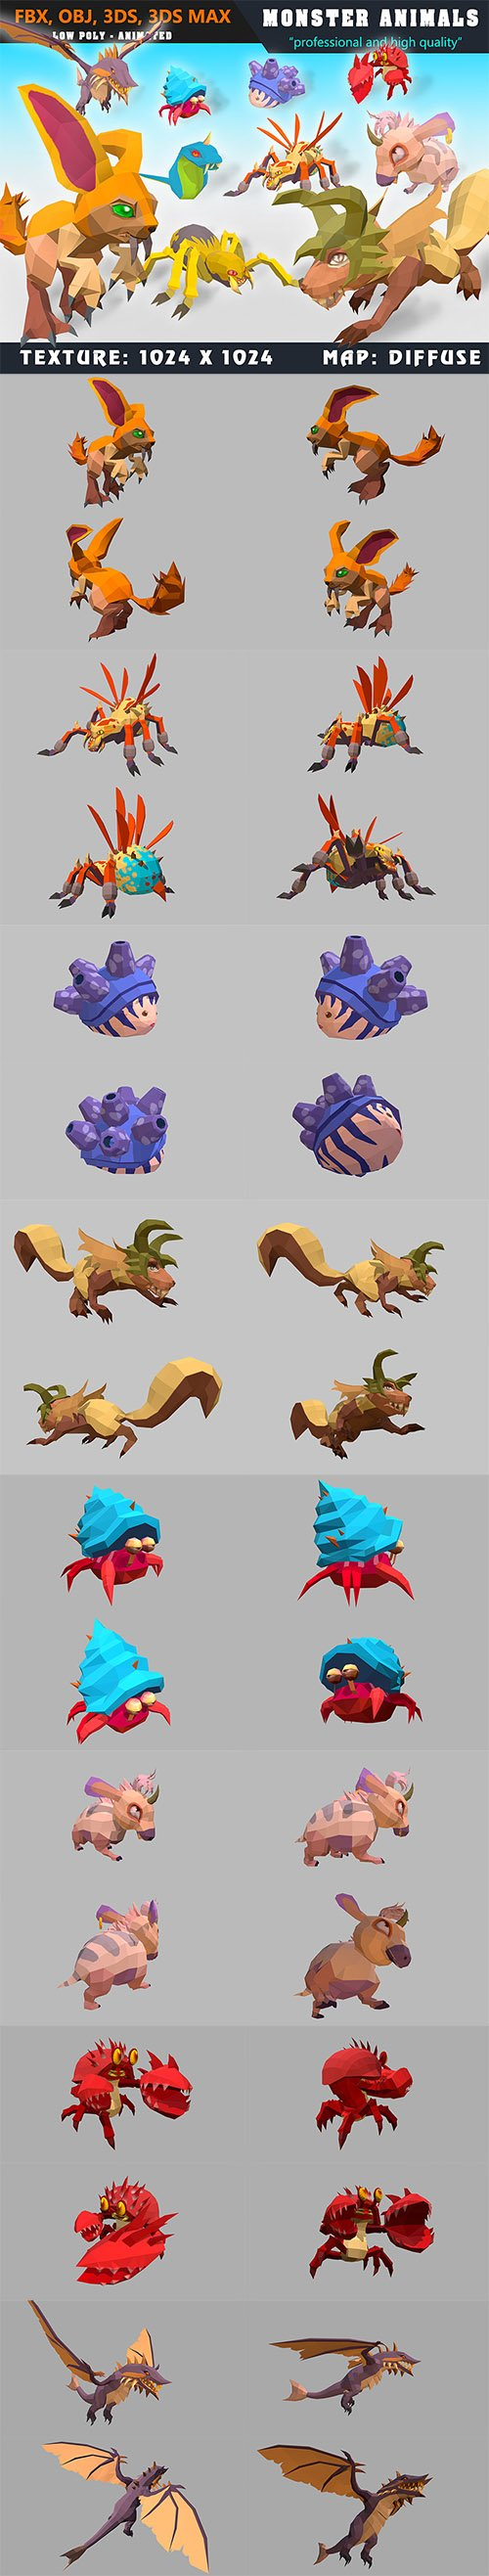 Cubebrush - Low Poly Monster Cartoon Collection 04 Animated